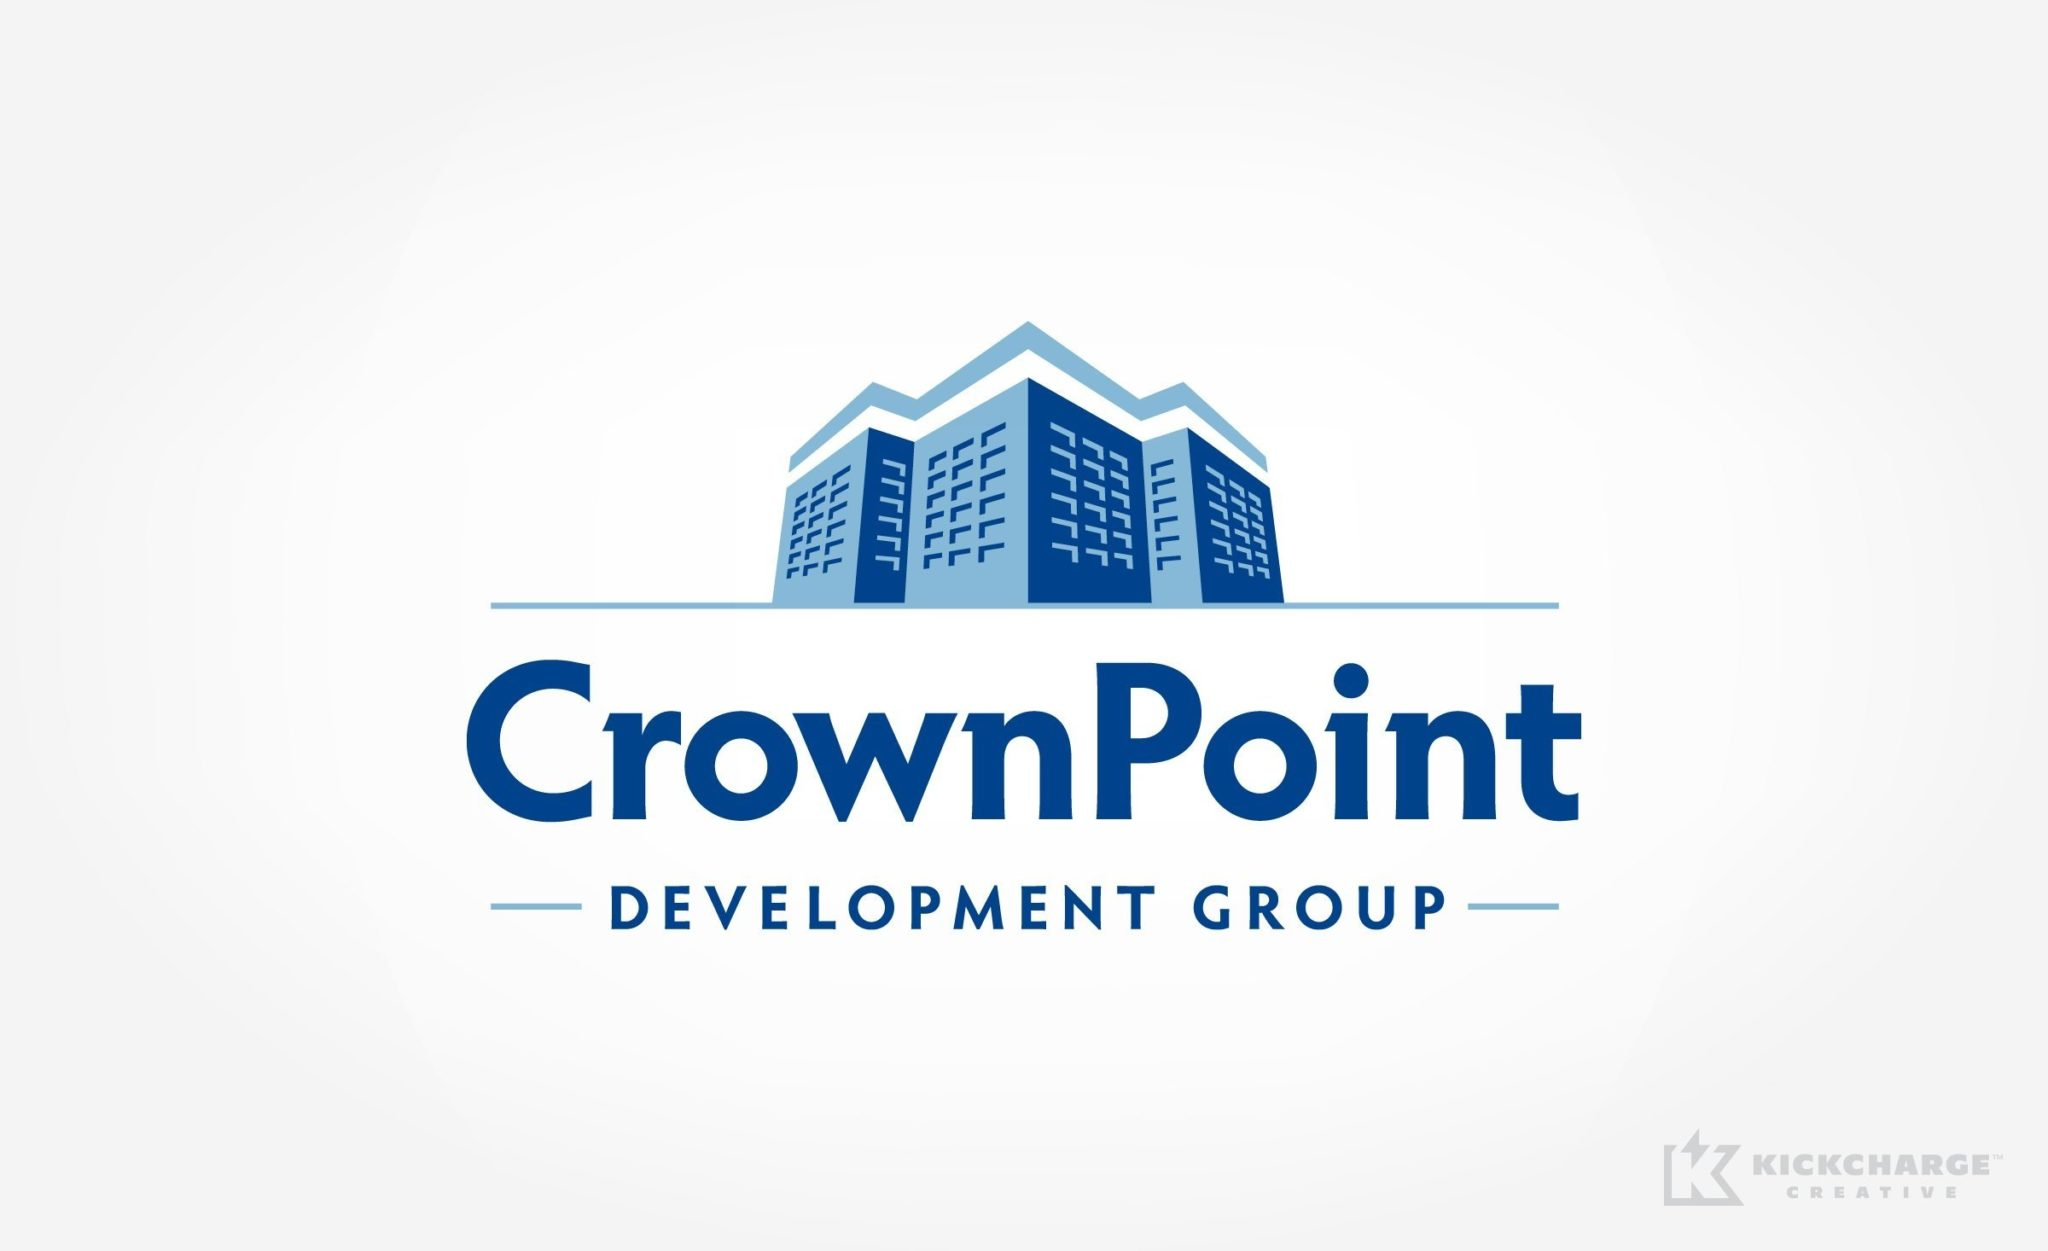 Crown Point Development Group